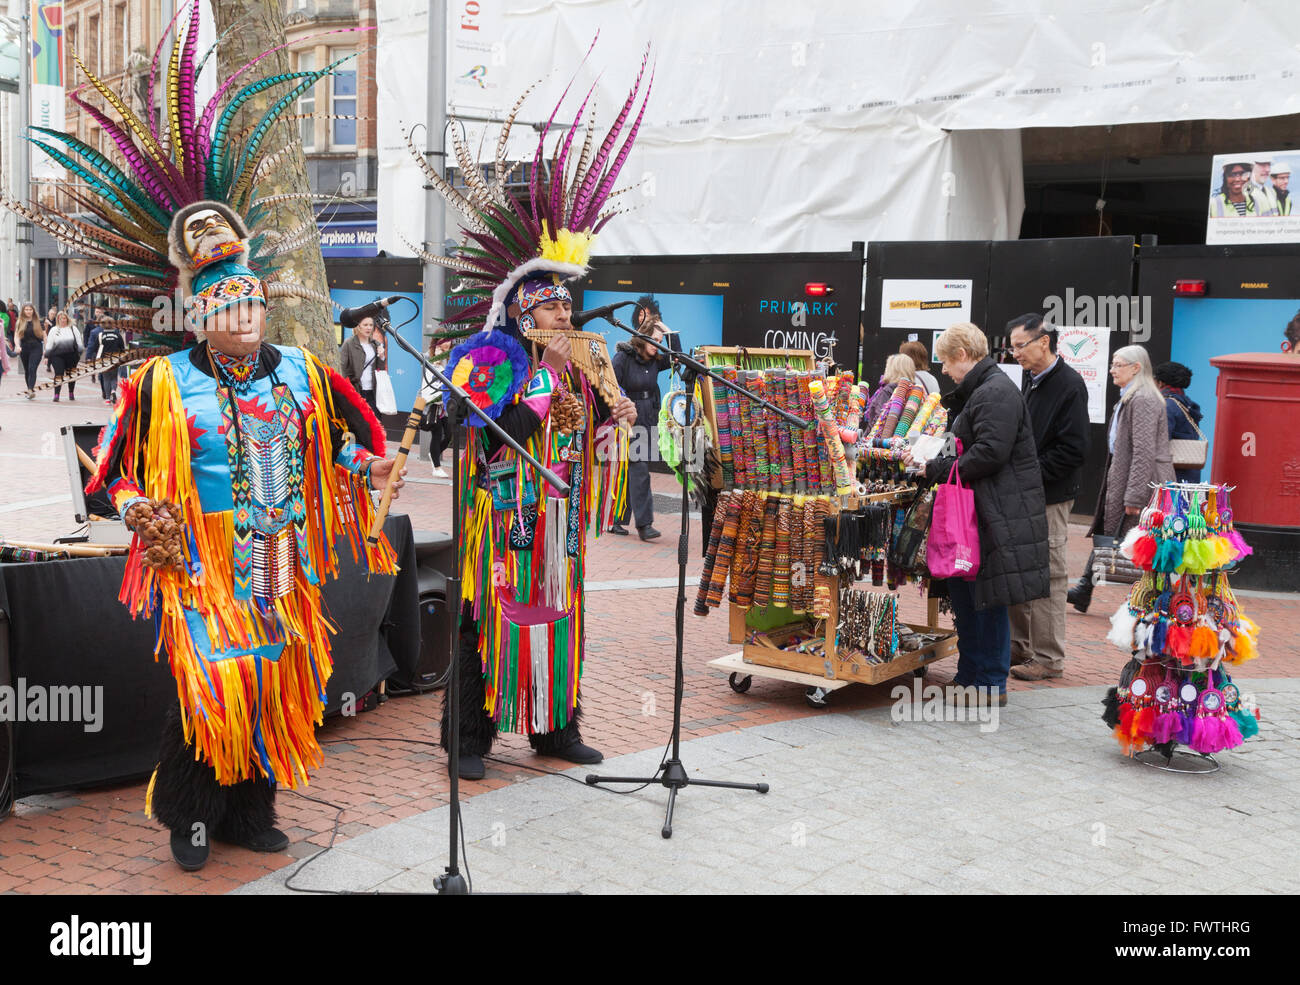 Peruvian buskers playing south american music in Broad Street, Reading, Berkshire UK - Stock Image